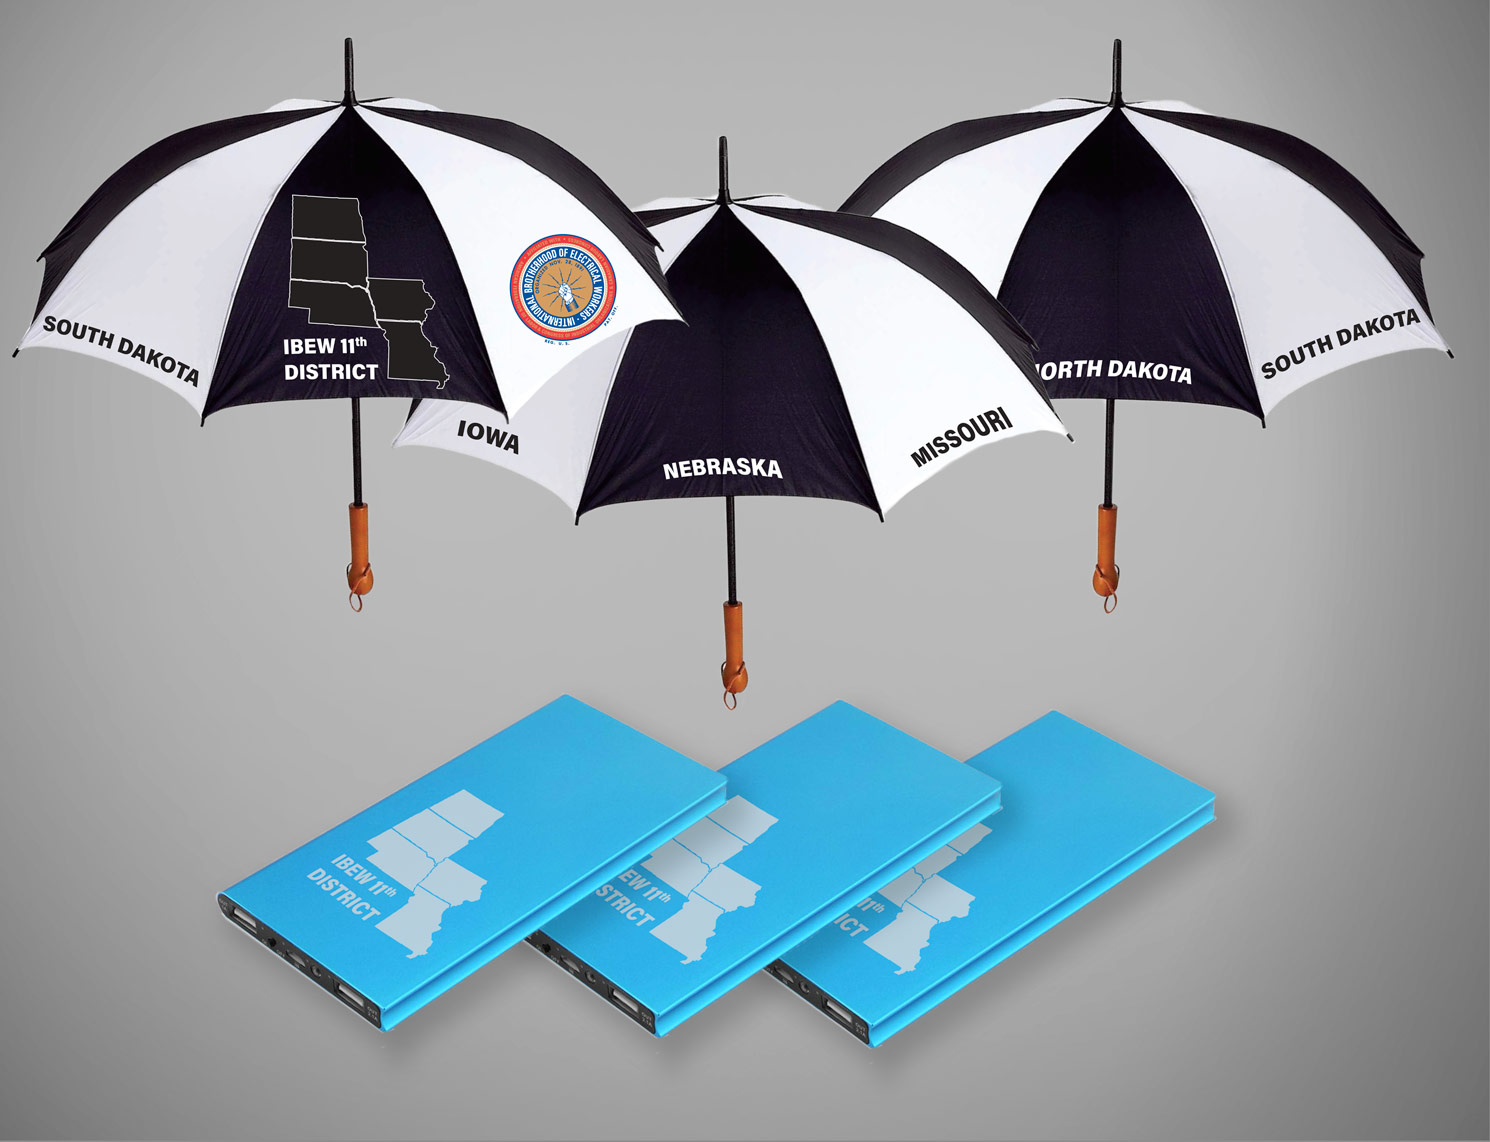 IBEW 11th District Umbrellas and Power Banks